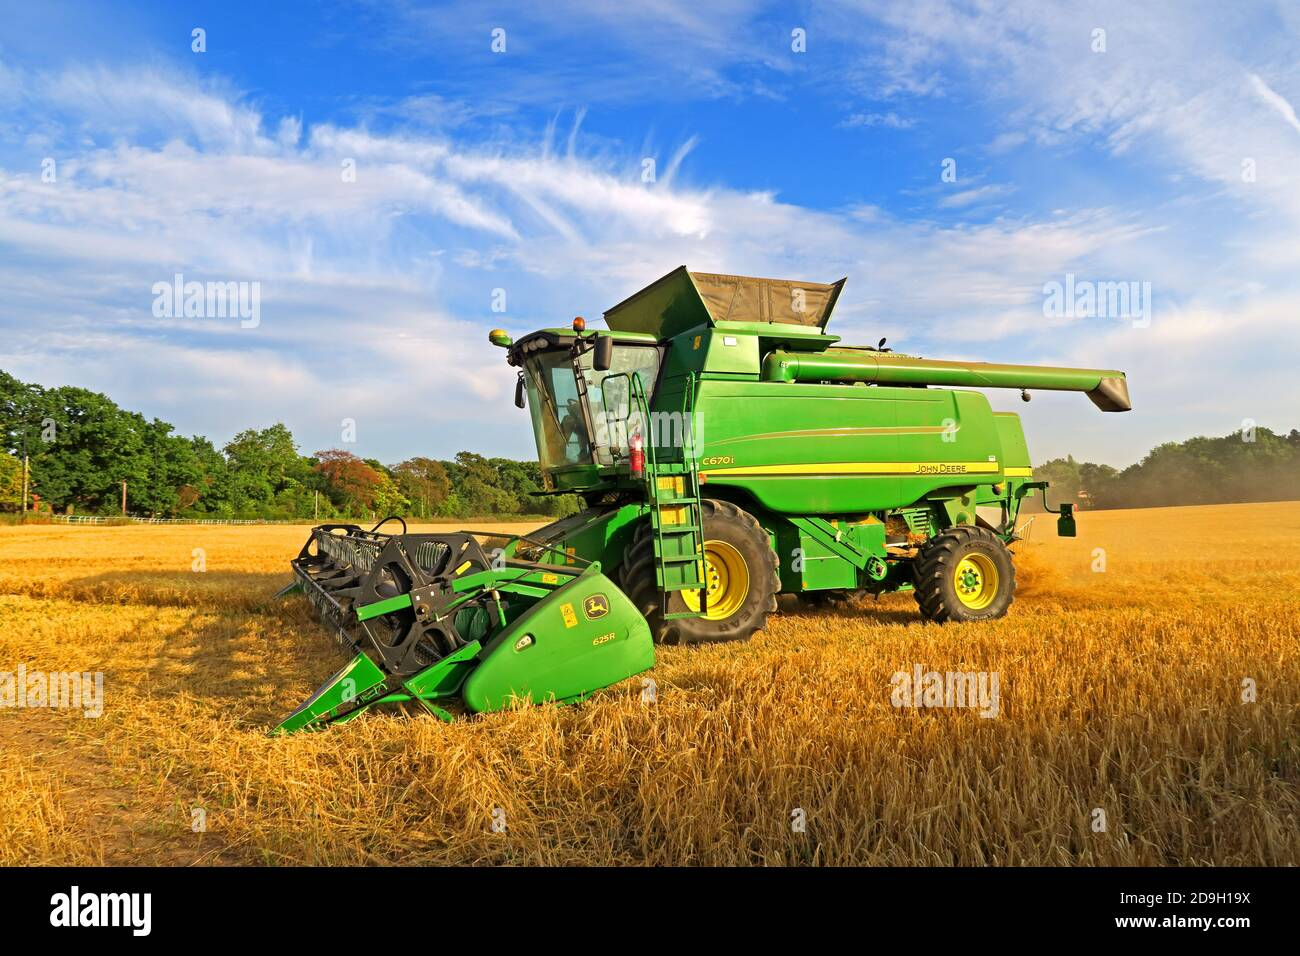 GoTonySmith,Hotpixuk,@HotpixUK,Cheshire,UK,England,C670i,combine harvester,farm machinery,Grappenhall,combine,rural,country,arable crop,autumn,crop,late summer,bringing the harvest in,harvest time,C670i combine,green,vehicle,Green John Deere Hillmaster C670i combine harvester,Green John Deere,Hillmaster C670i,Green John Deere Hillmaster C670i,Hillmaster C670i combine harvester,Cheshire farming,grain,straw,productivity,Brexit farming,grain price,threat,British,exports,automated combine,WA4,agriculture